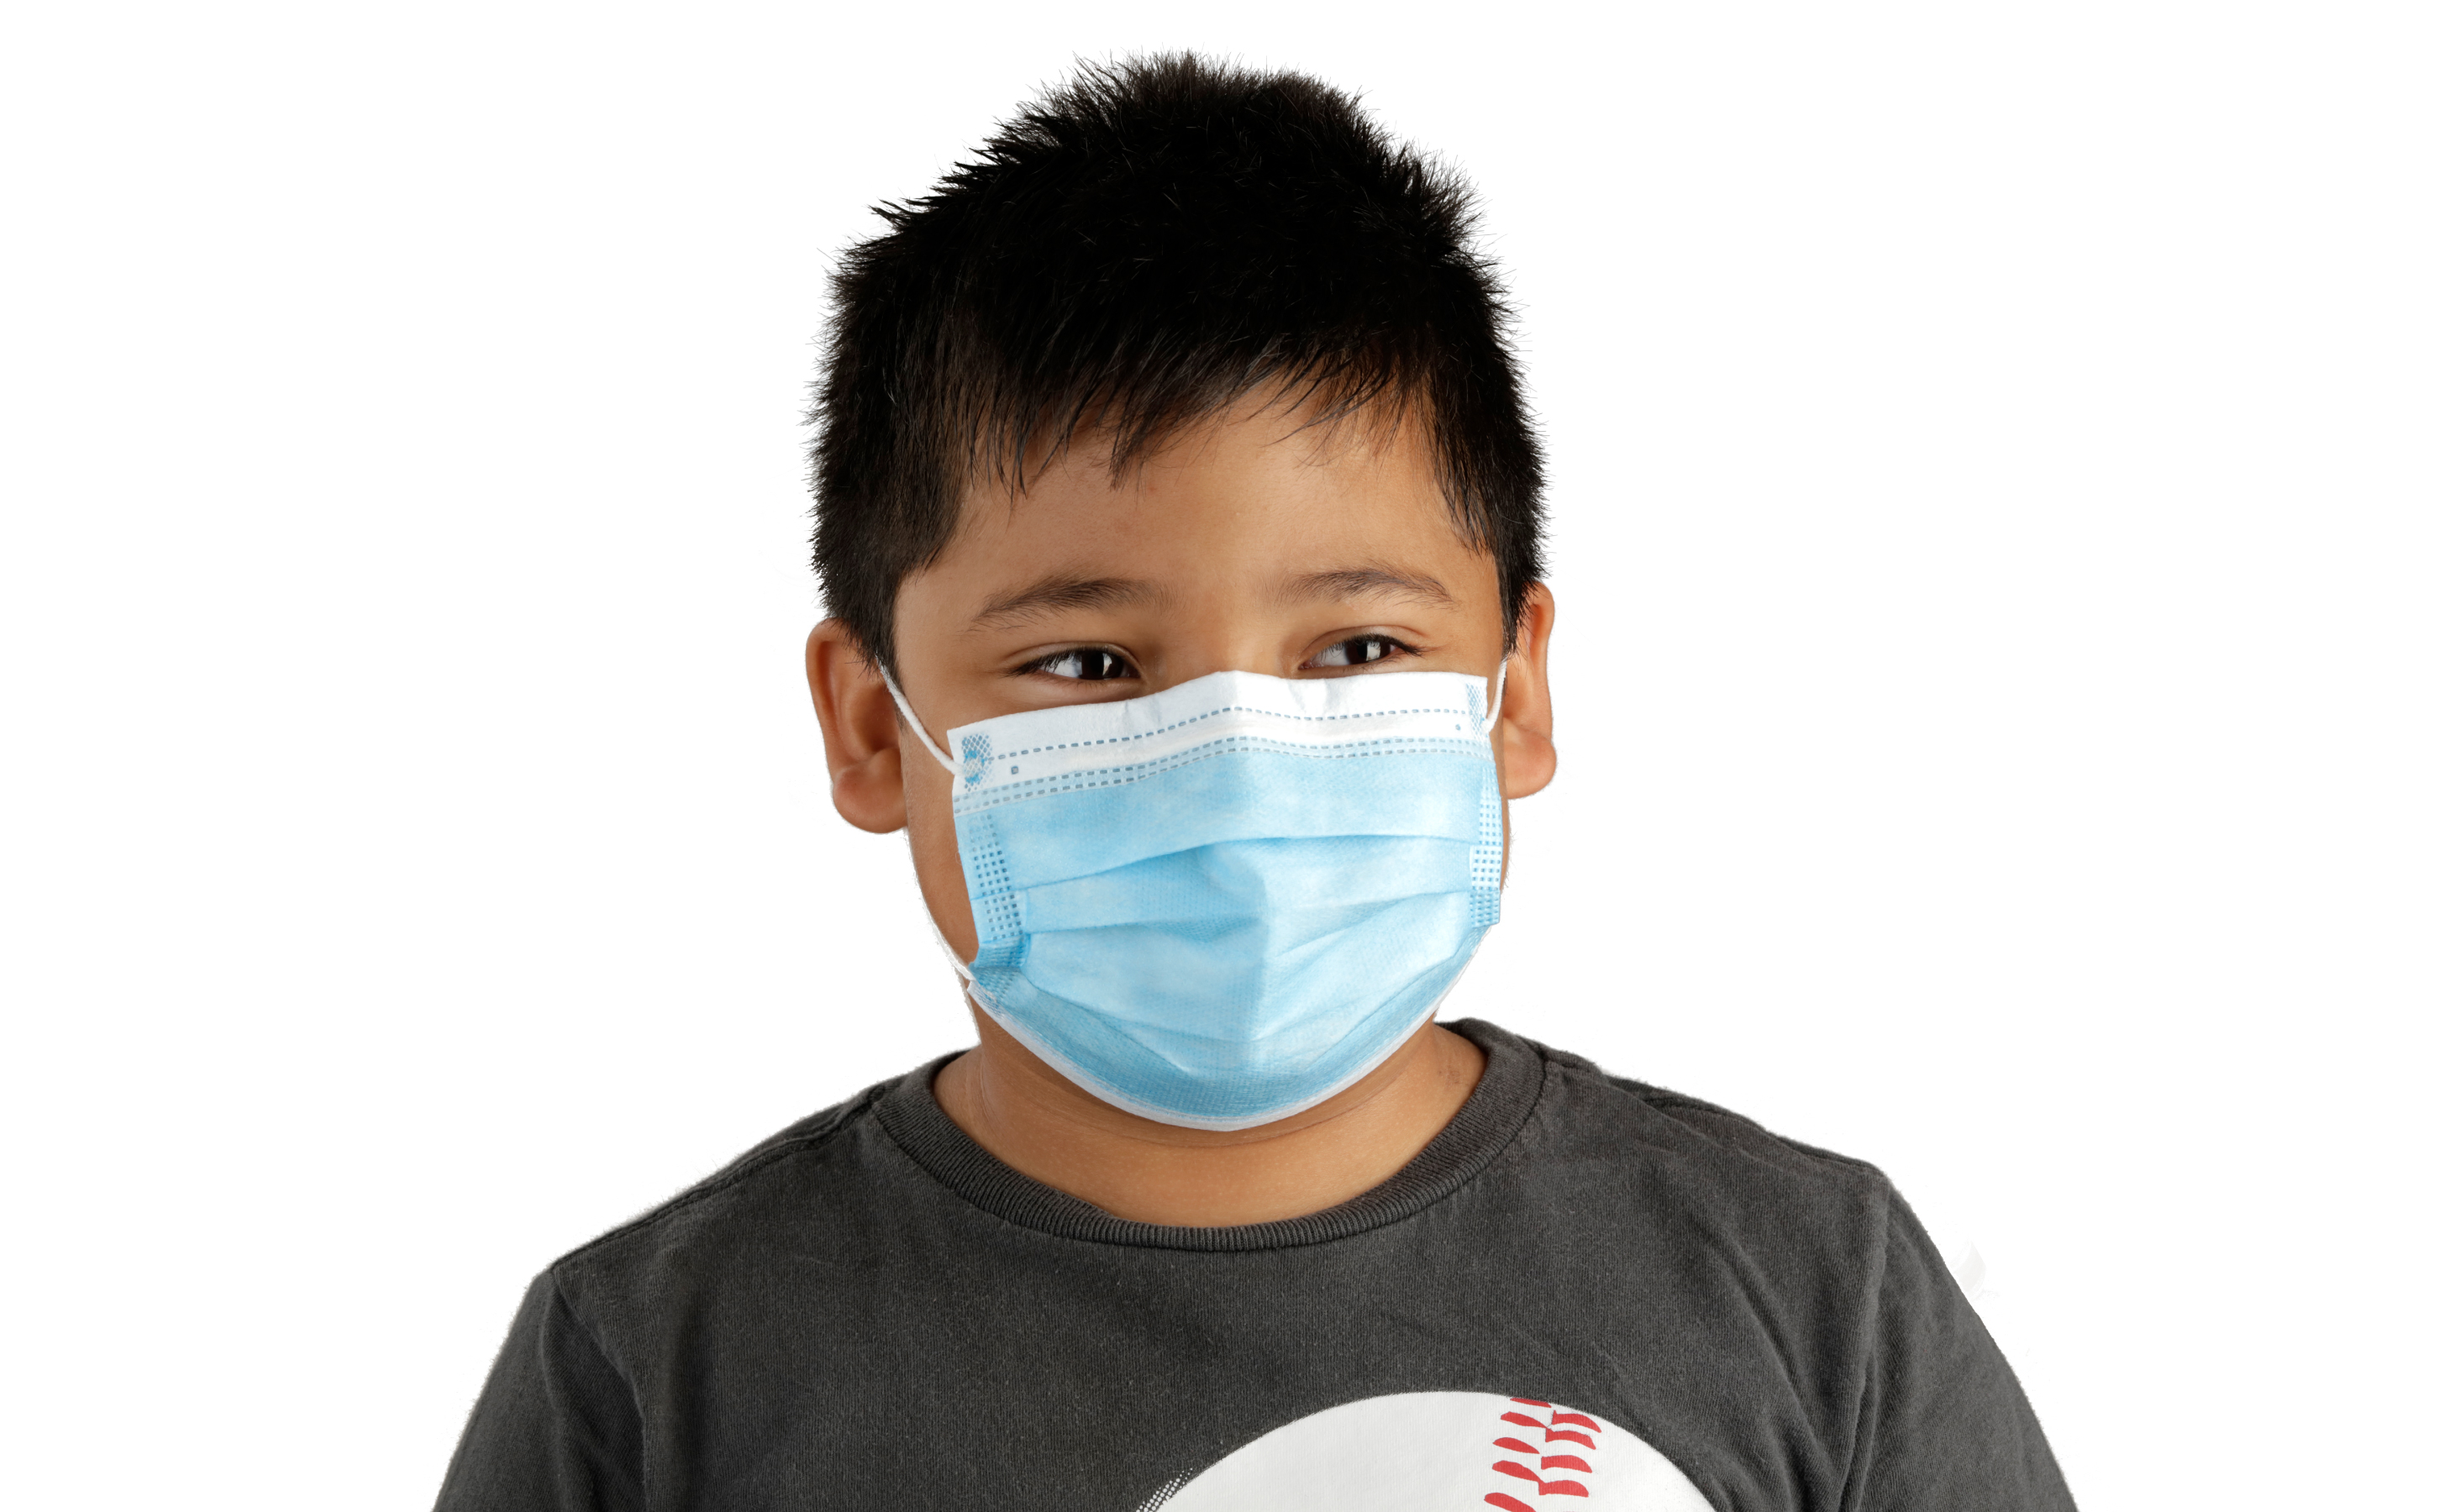 3-Layer Disposable Kids Youth Face Mask Light Blue Wearing Smiling